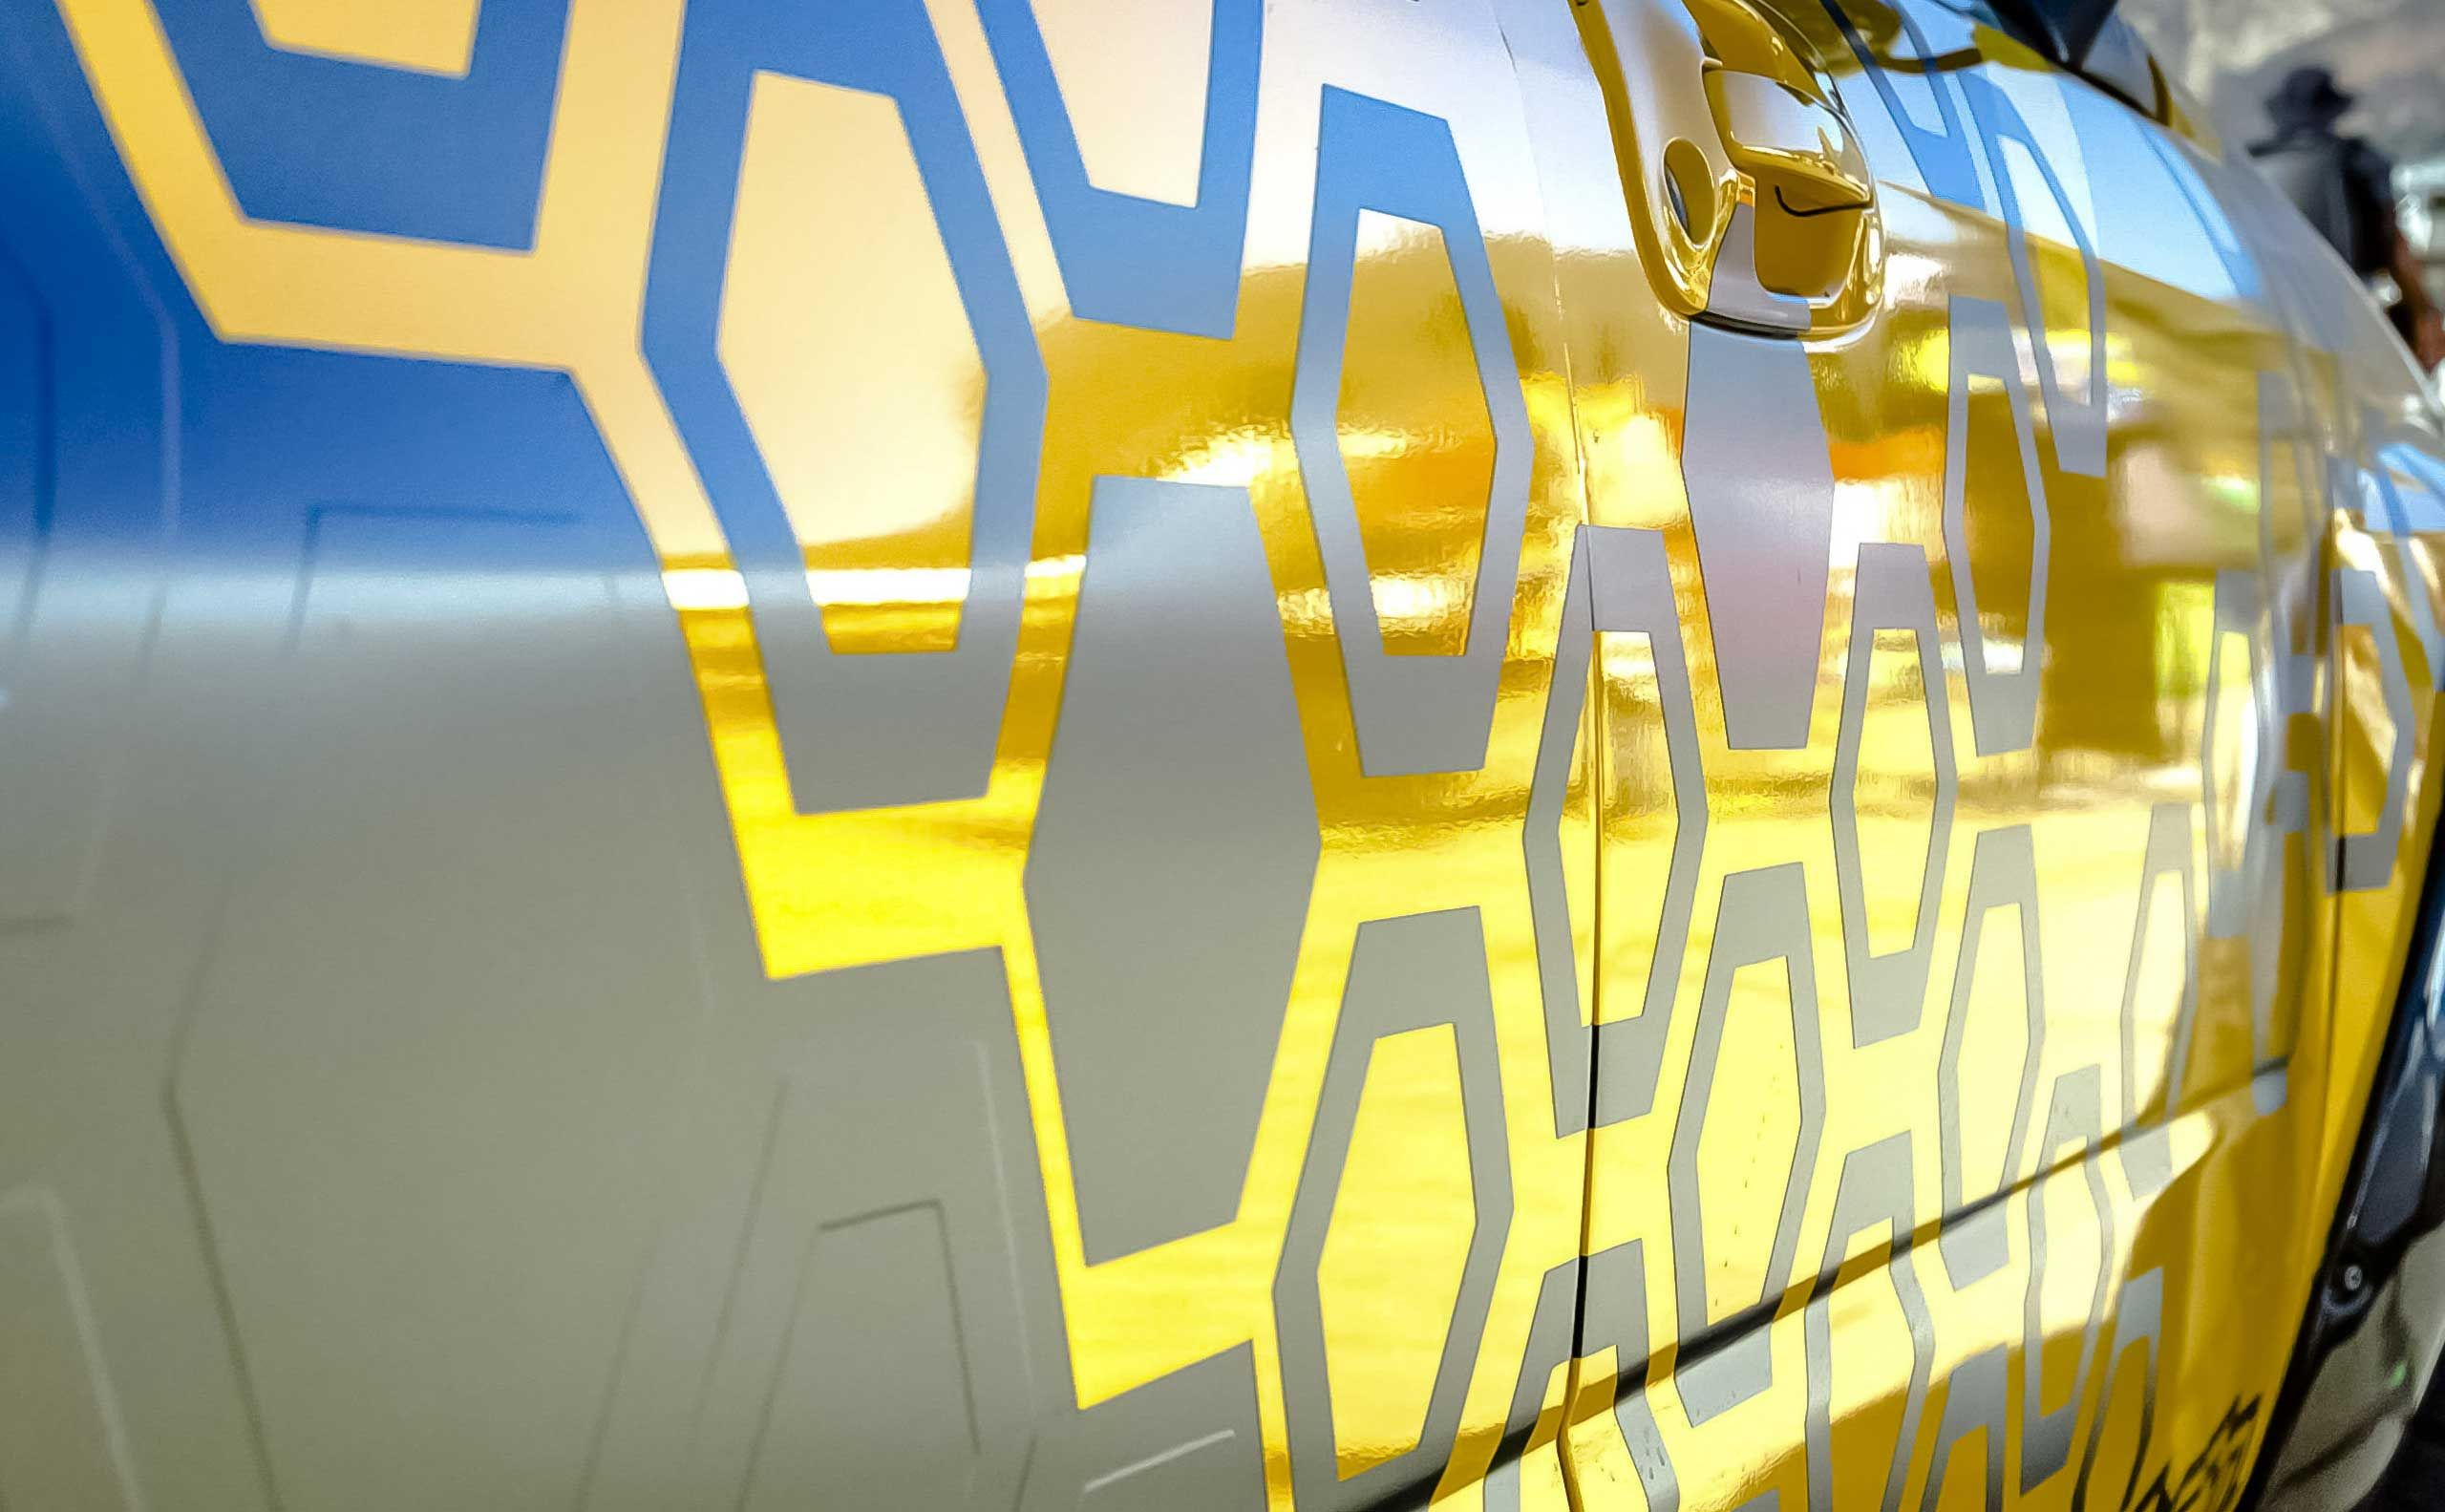 Vehicle graphics that looks like honeycomb